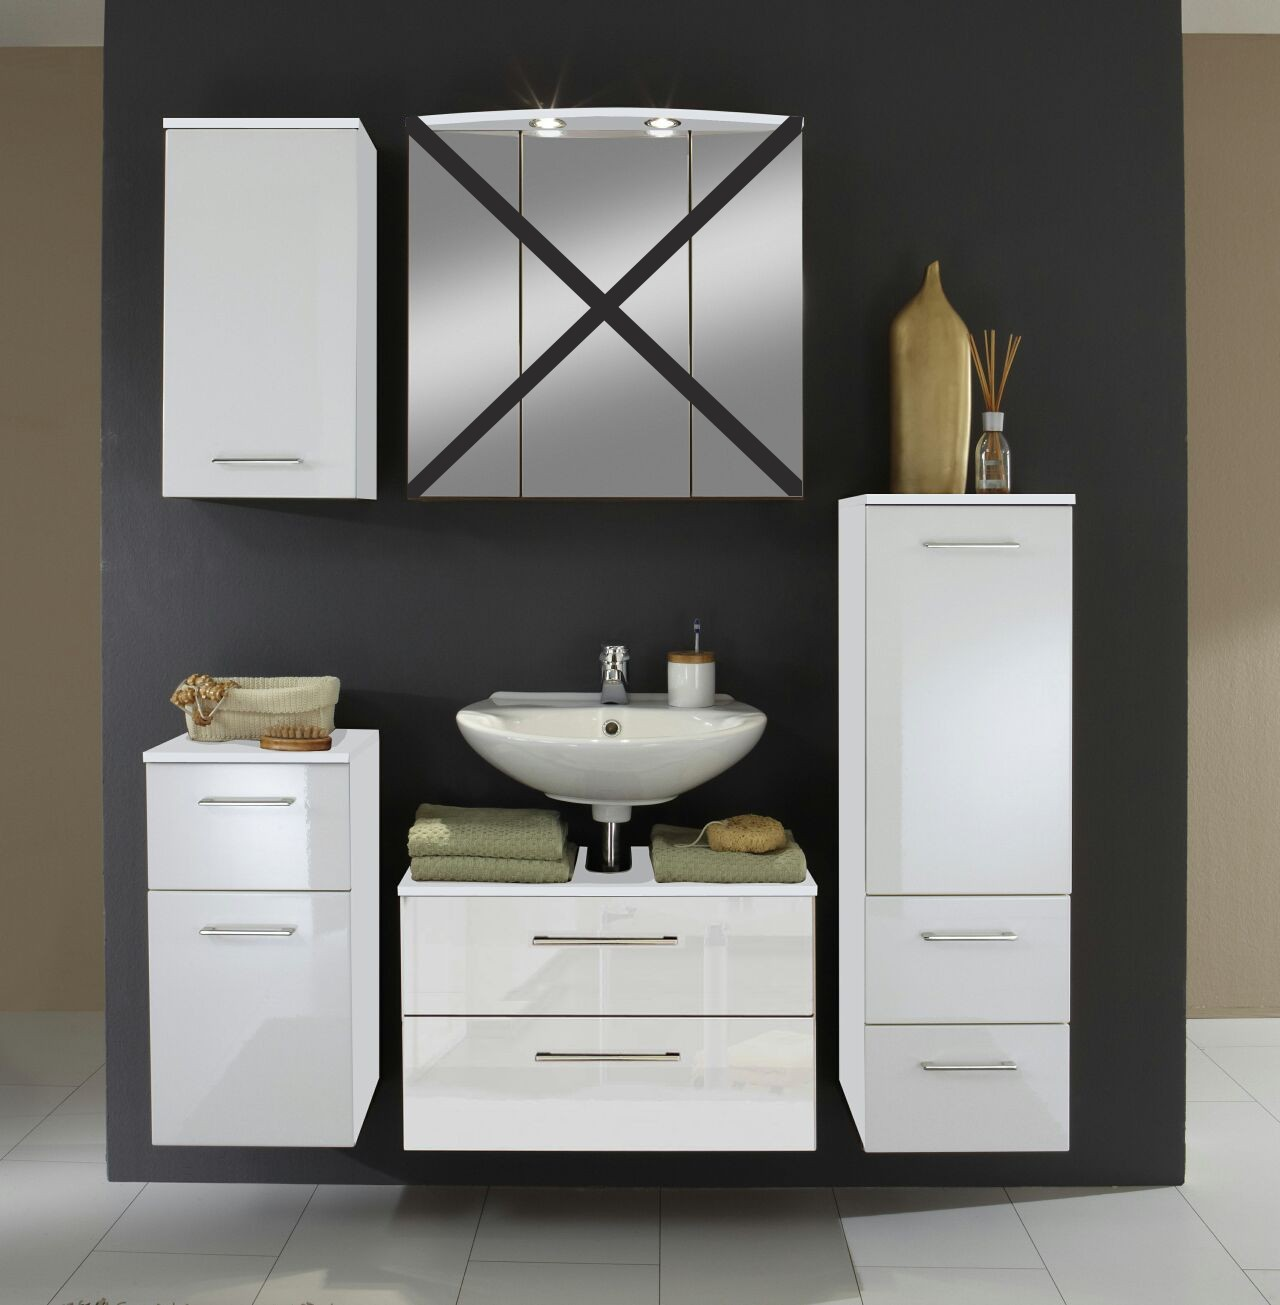 badm bel set next 4 teilig 140 cm breit hochglanz wei bad badm belsets. Black Bedroom Furniture Sets. Home Design Ideas